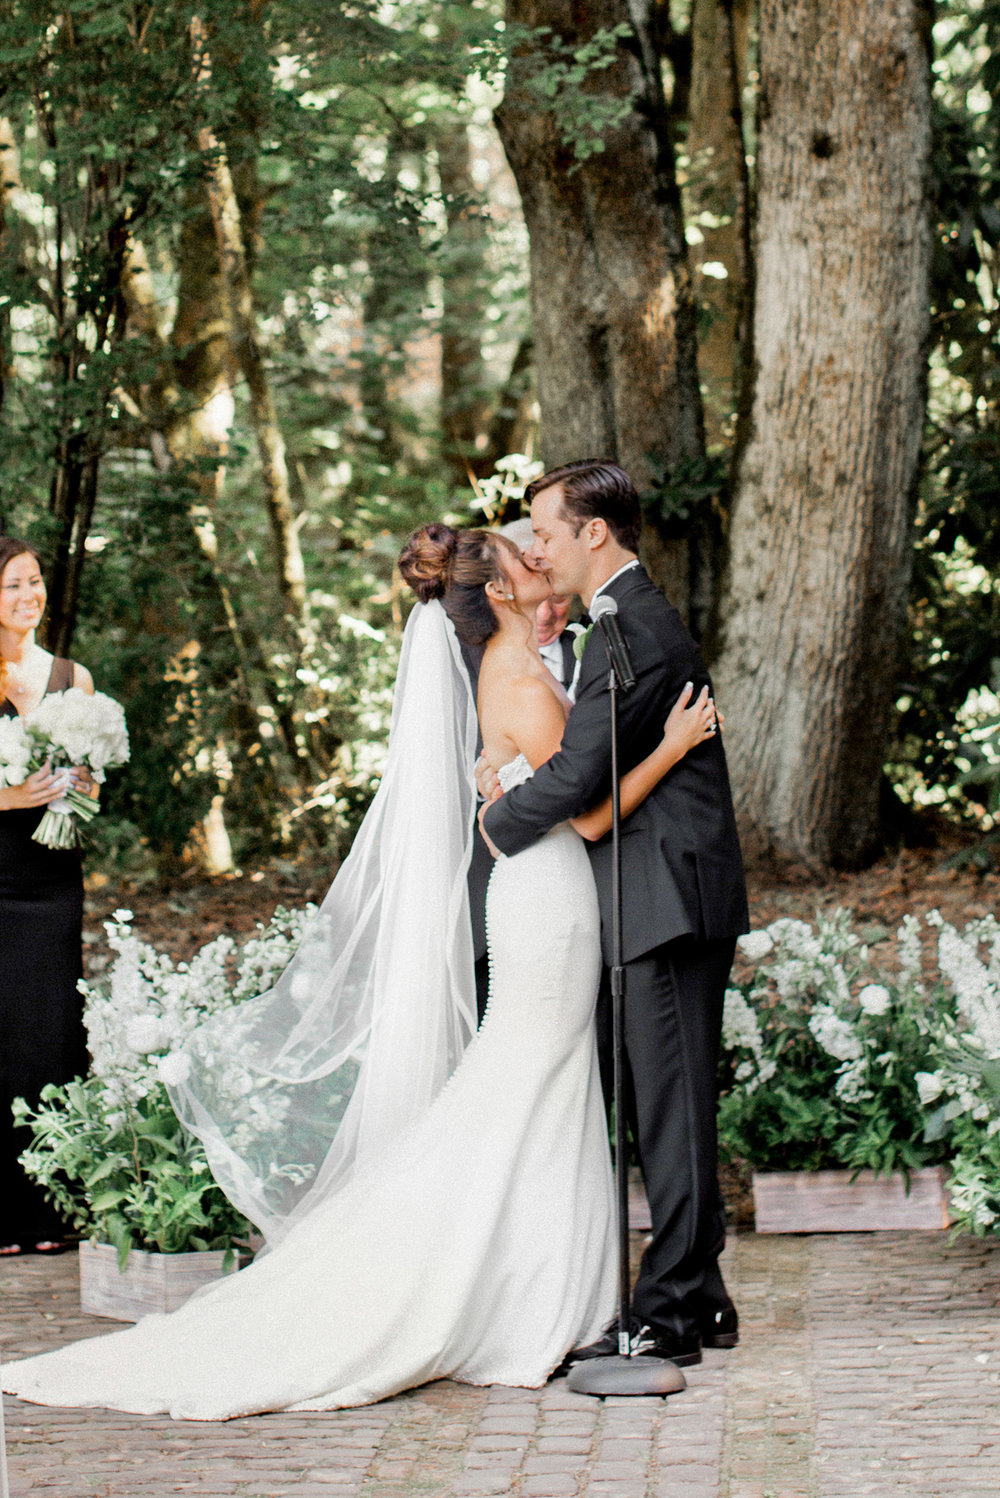 142OutliveCreative_Travel_Photographer_Videographer_Lewis&Clark_Oregon_Elegant_BlackTie_Destination_Wedding.jpg